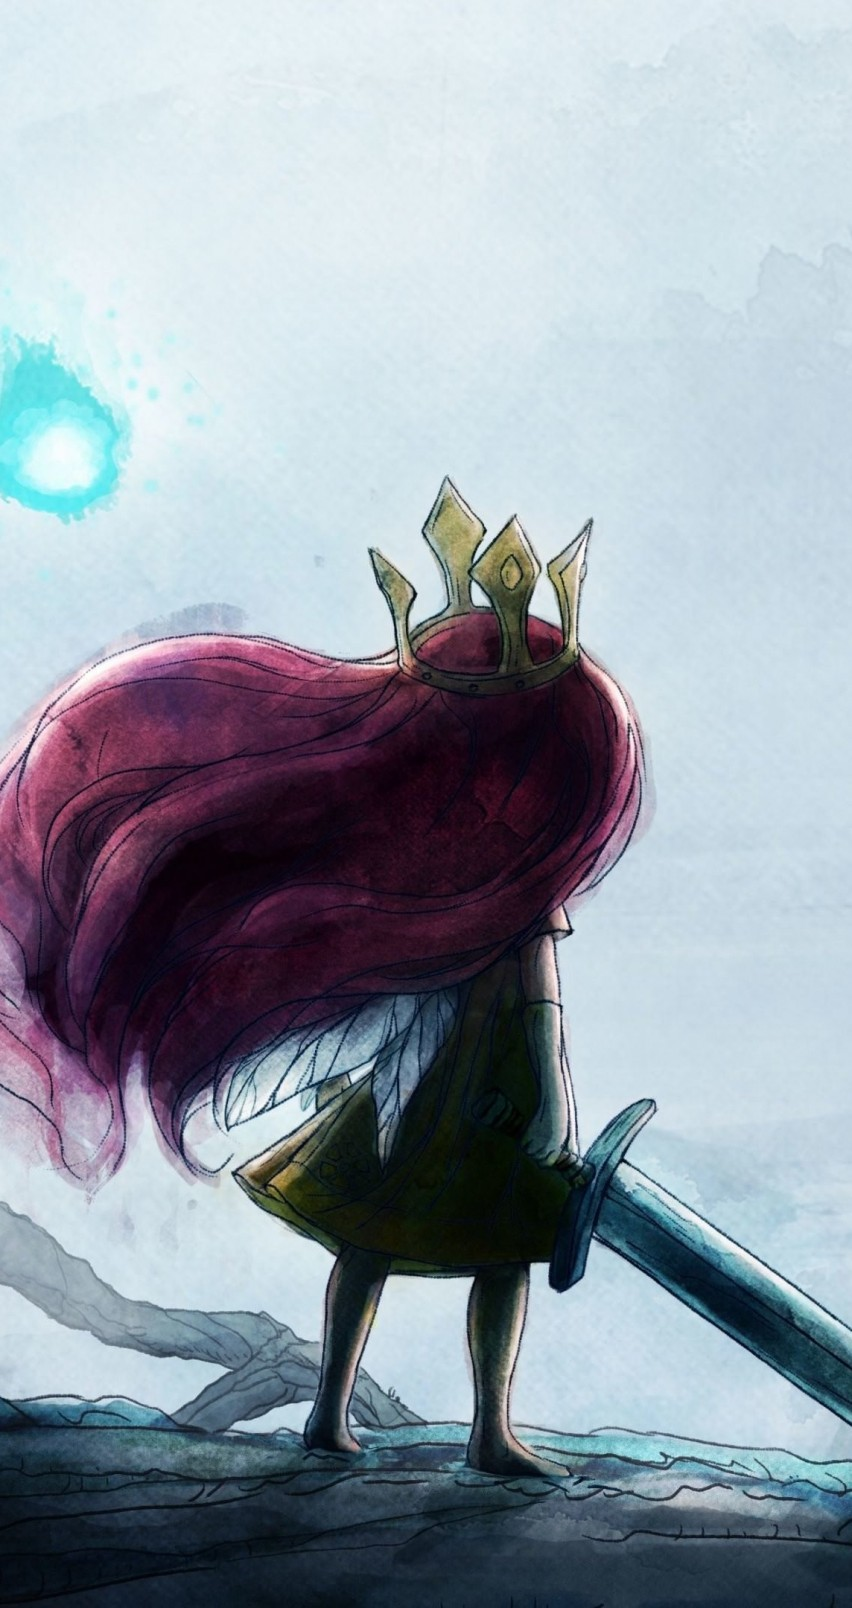 Child Of Light Wallpaper for Apple iPhone 6 / 6s